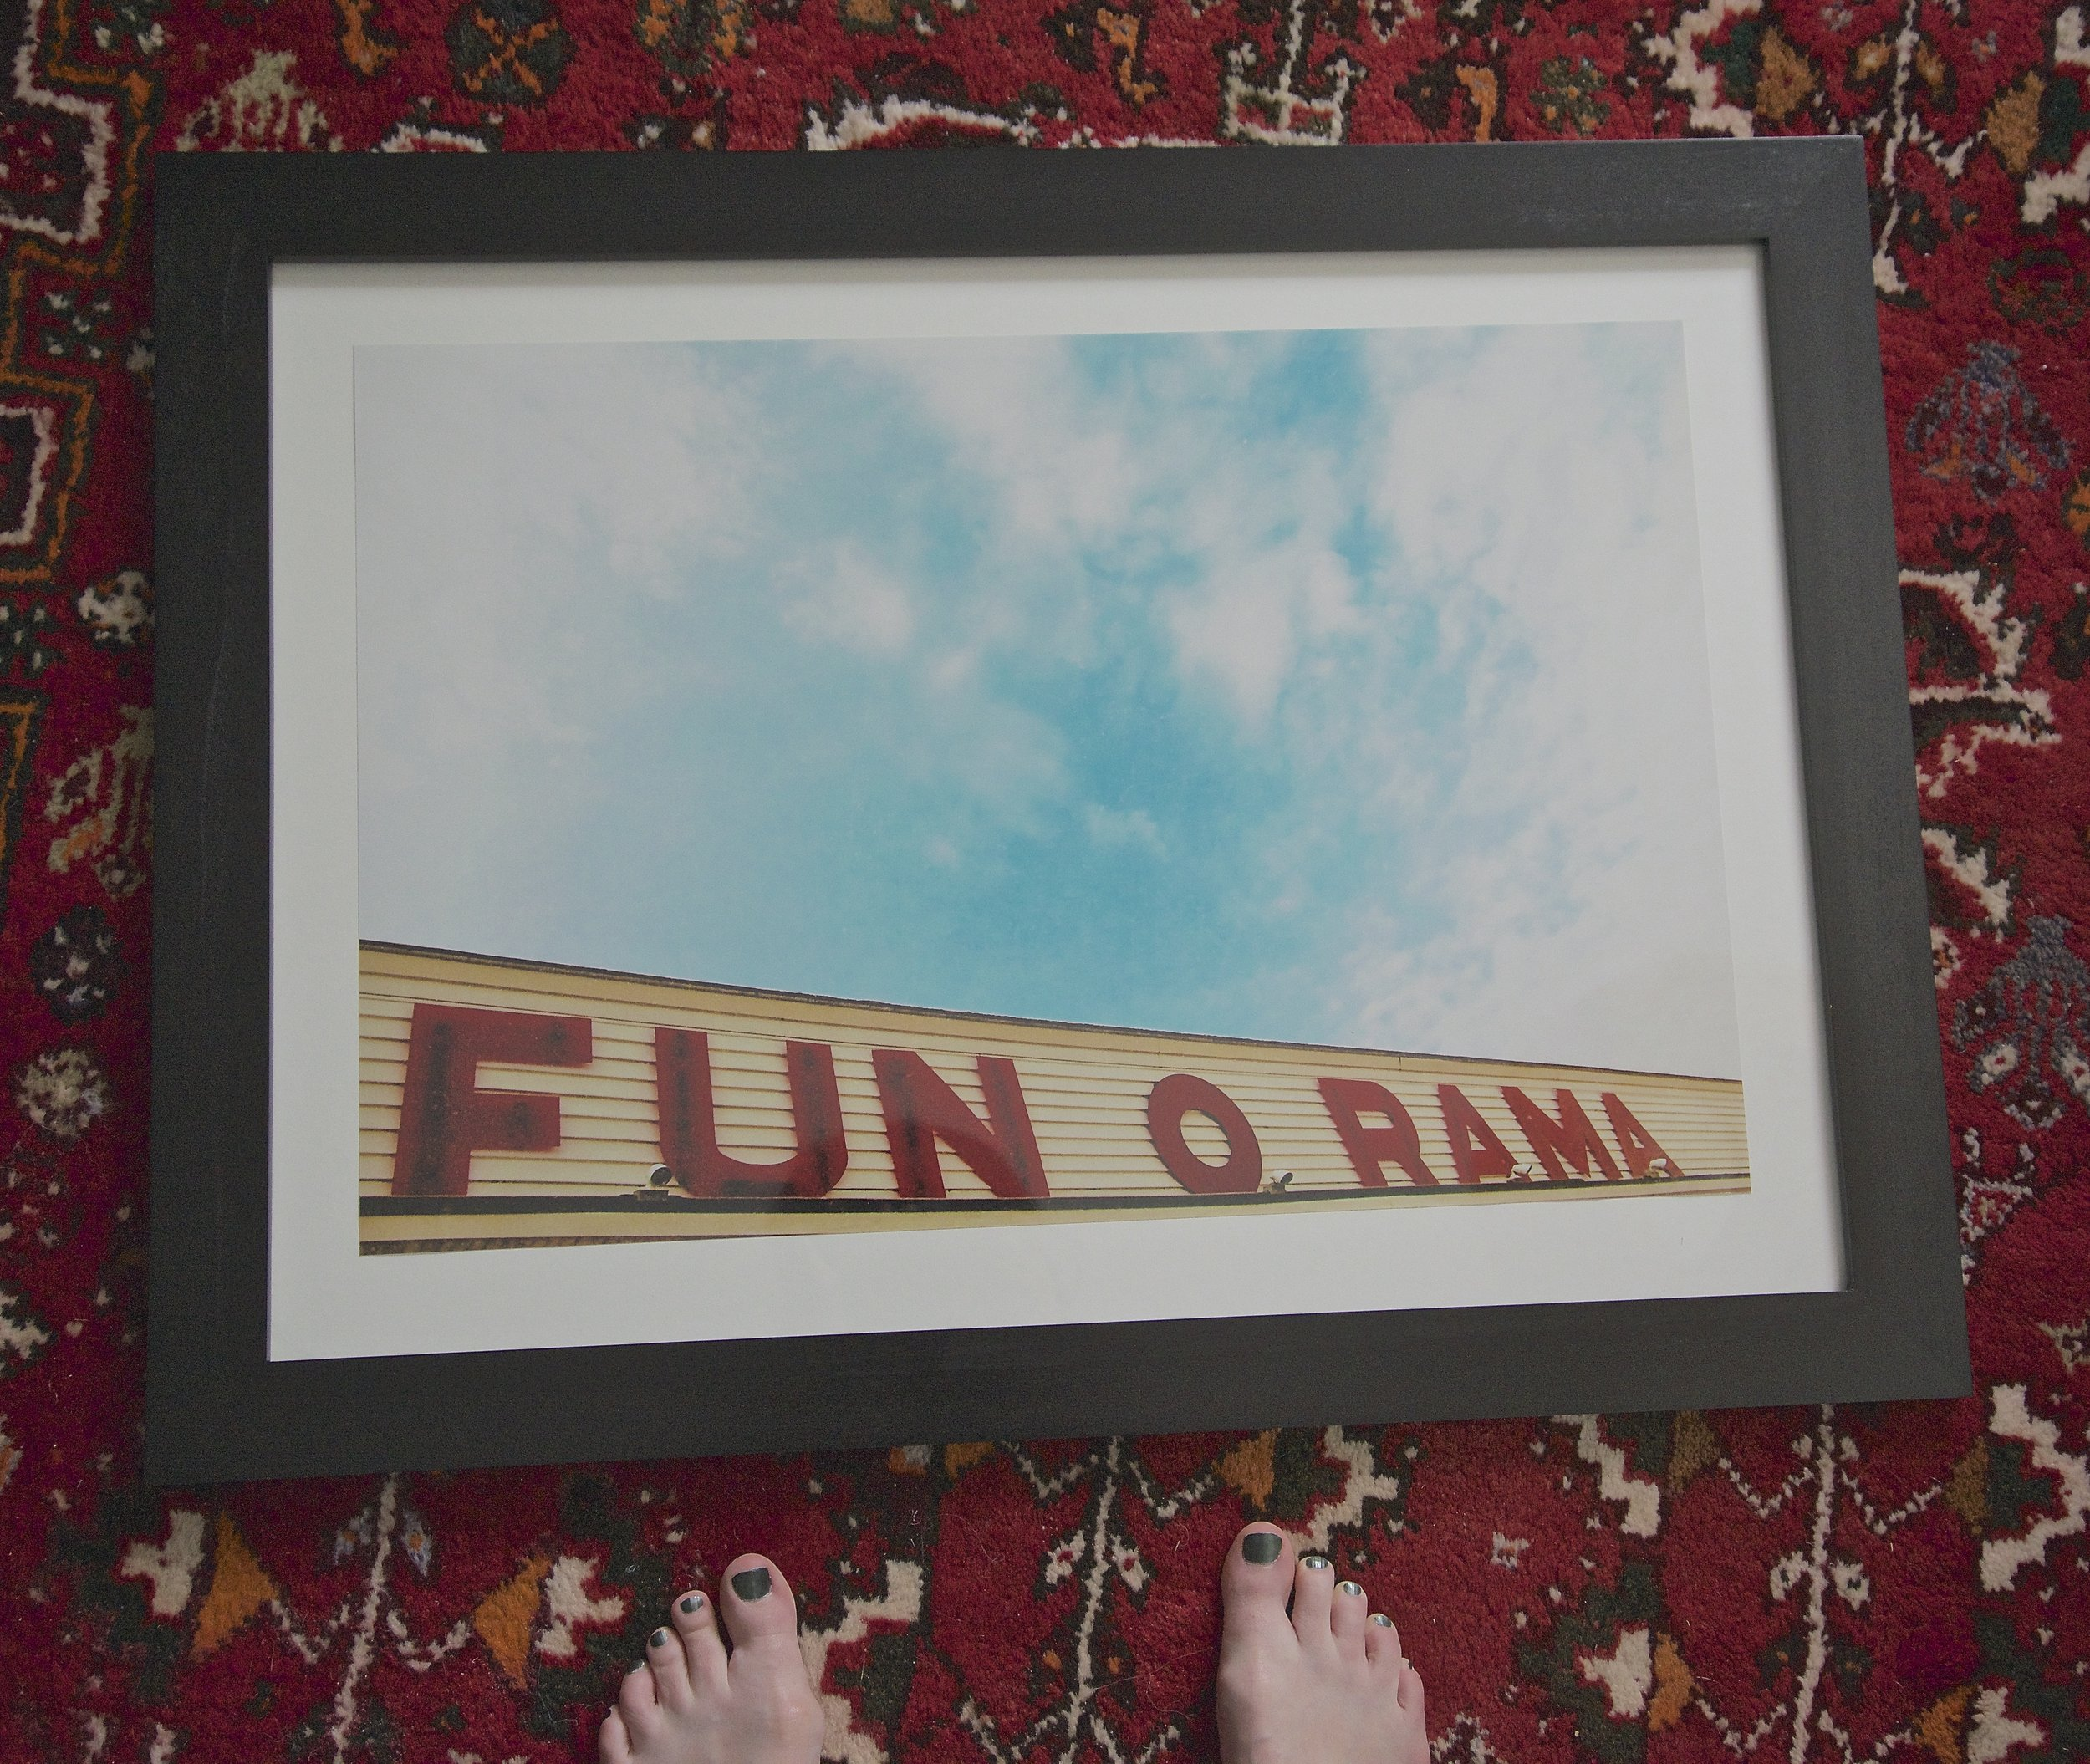 This is the largest print I received from Meg. I popped it in the frame as soon as I opened it up.